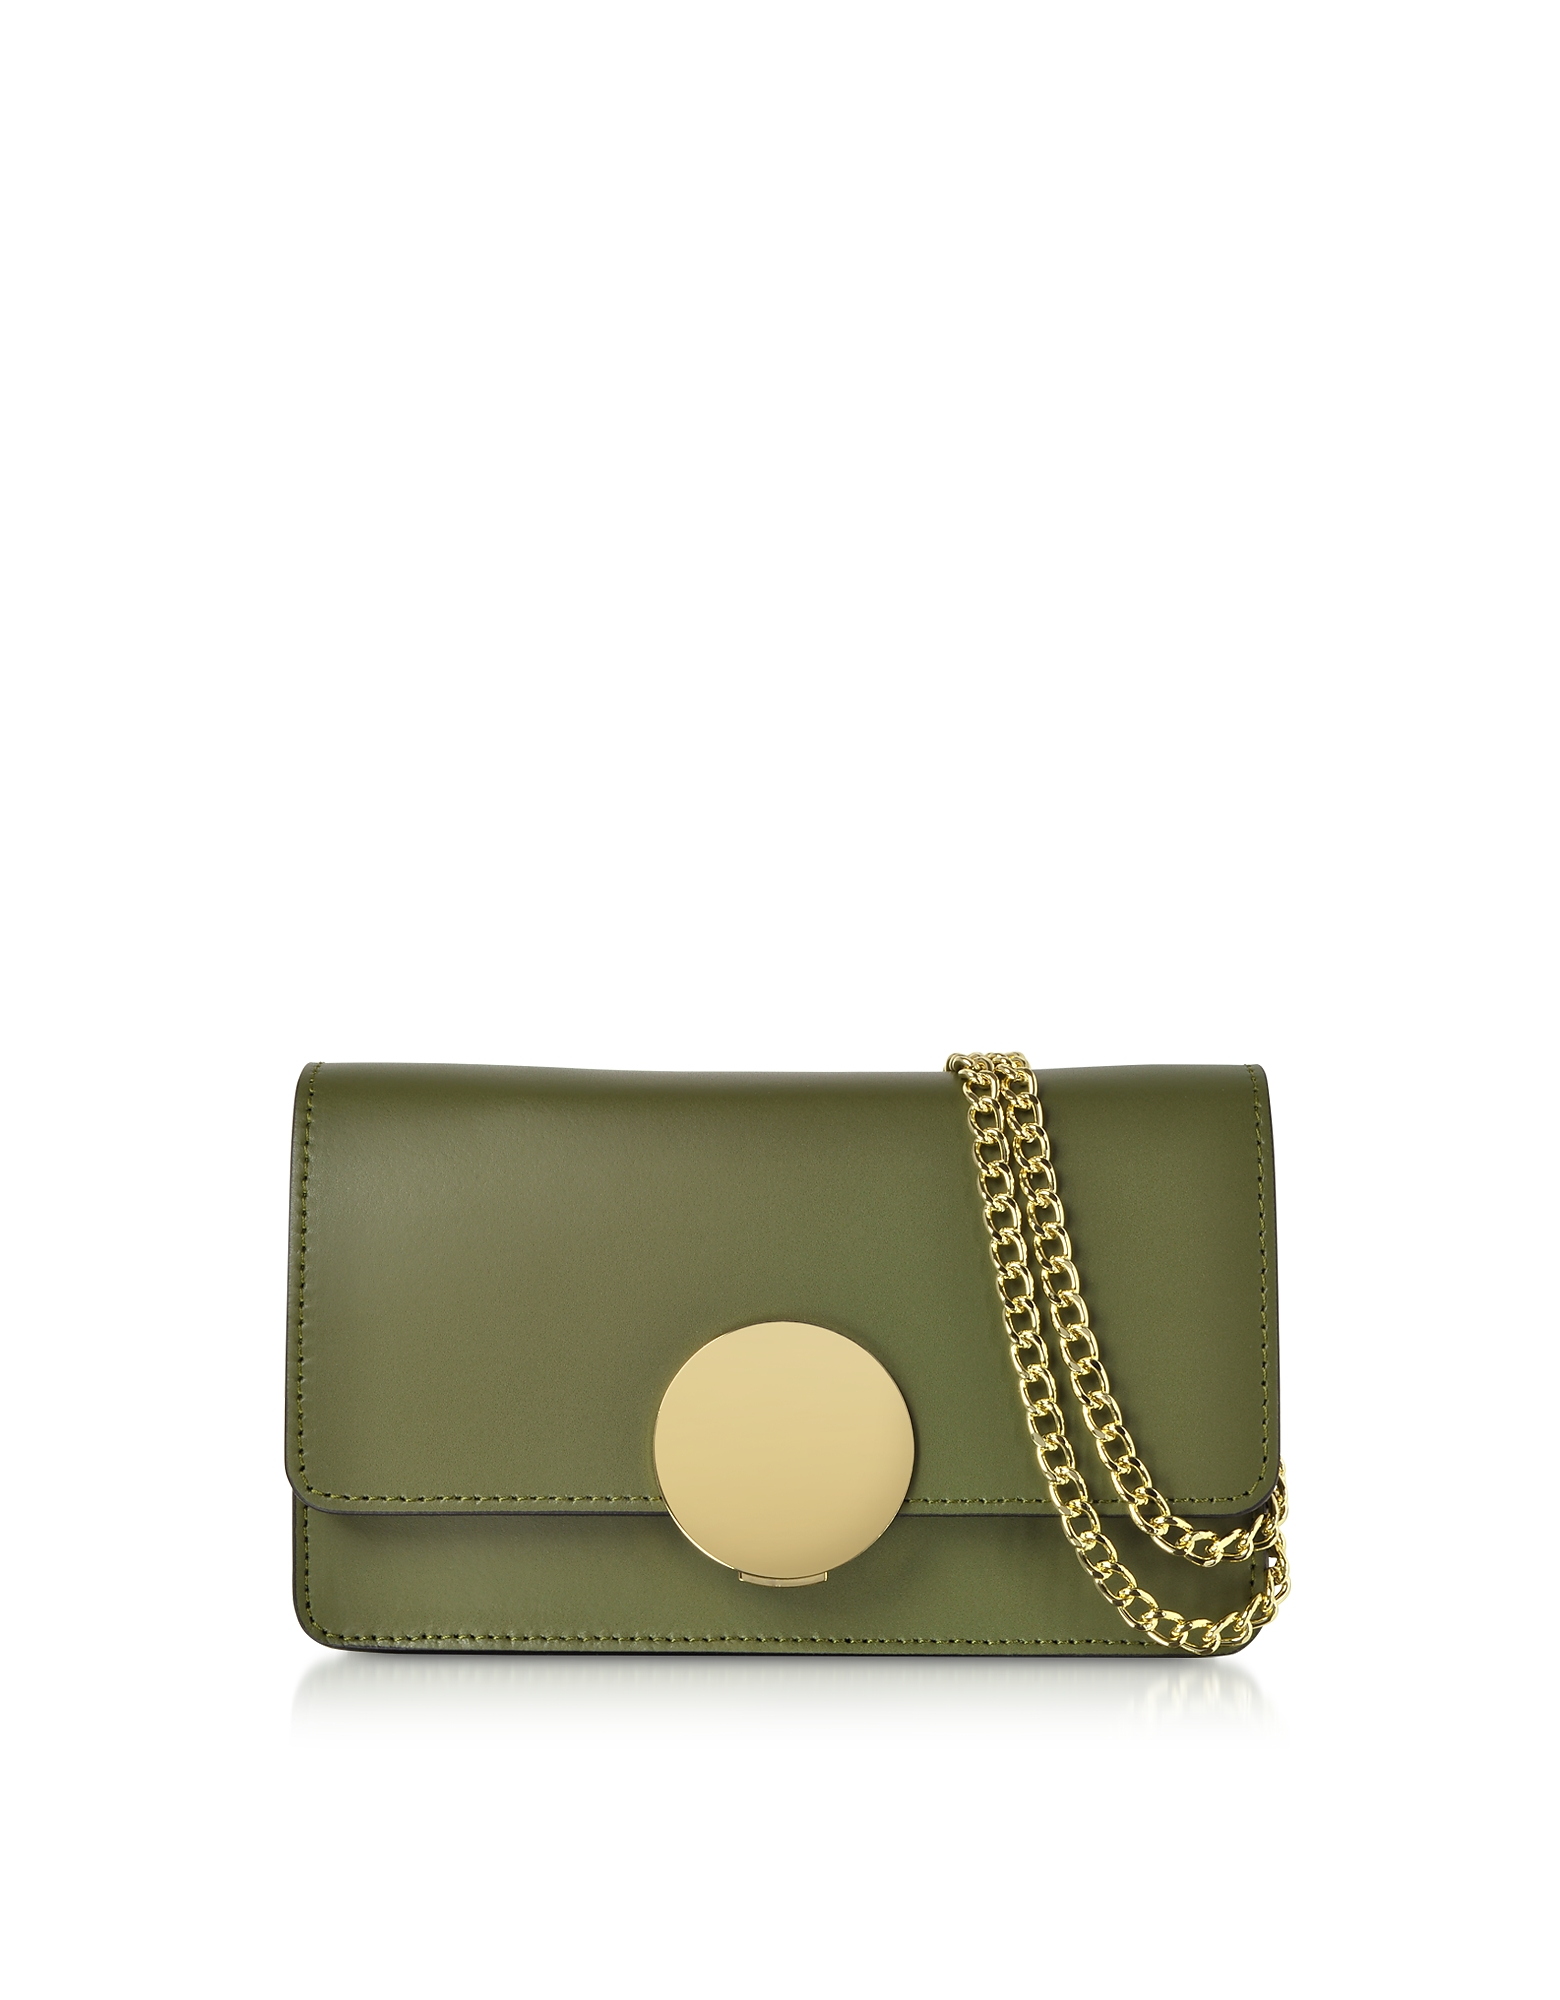 Le Parmentier Handbags, New Ondina Nano Leather and Suede Crossbody Clutch